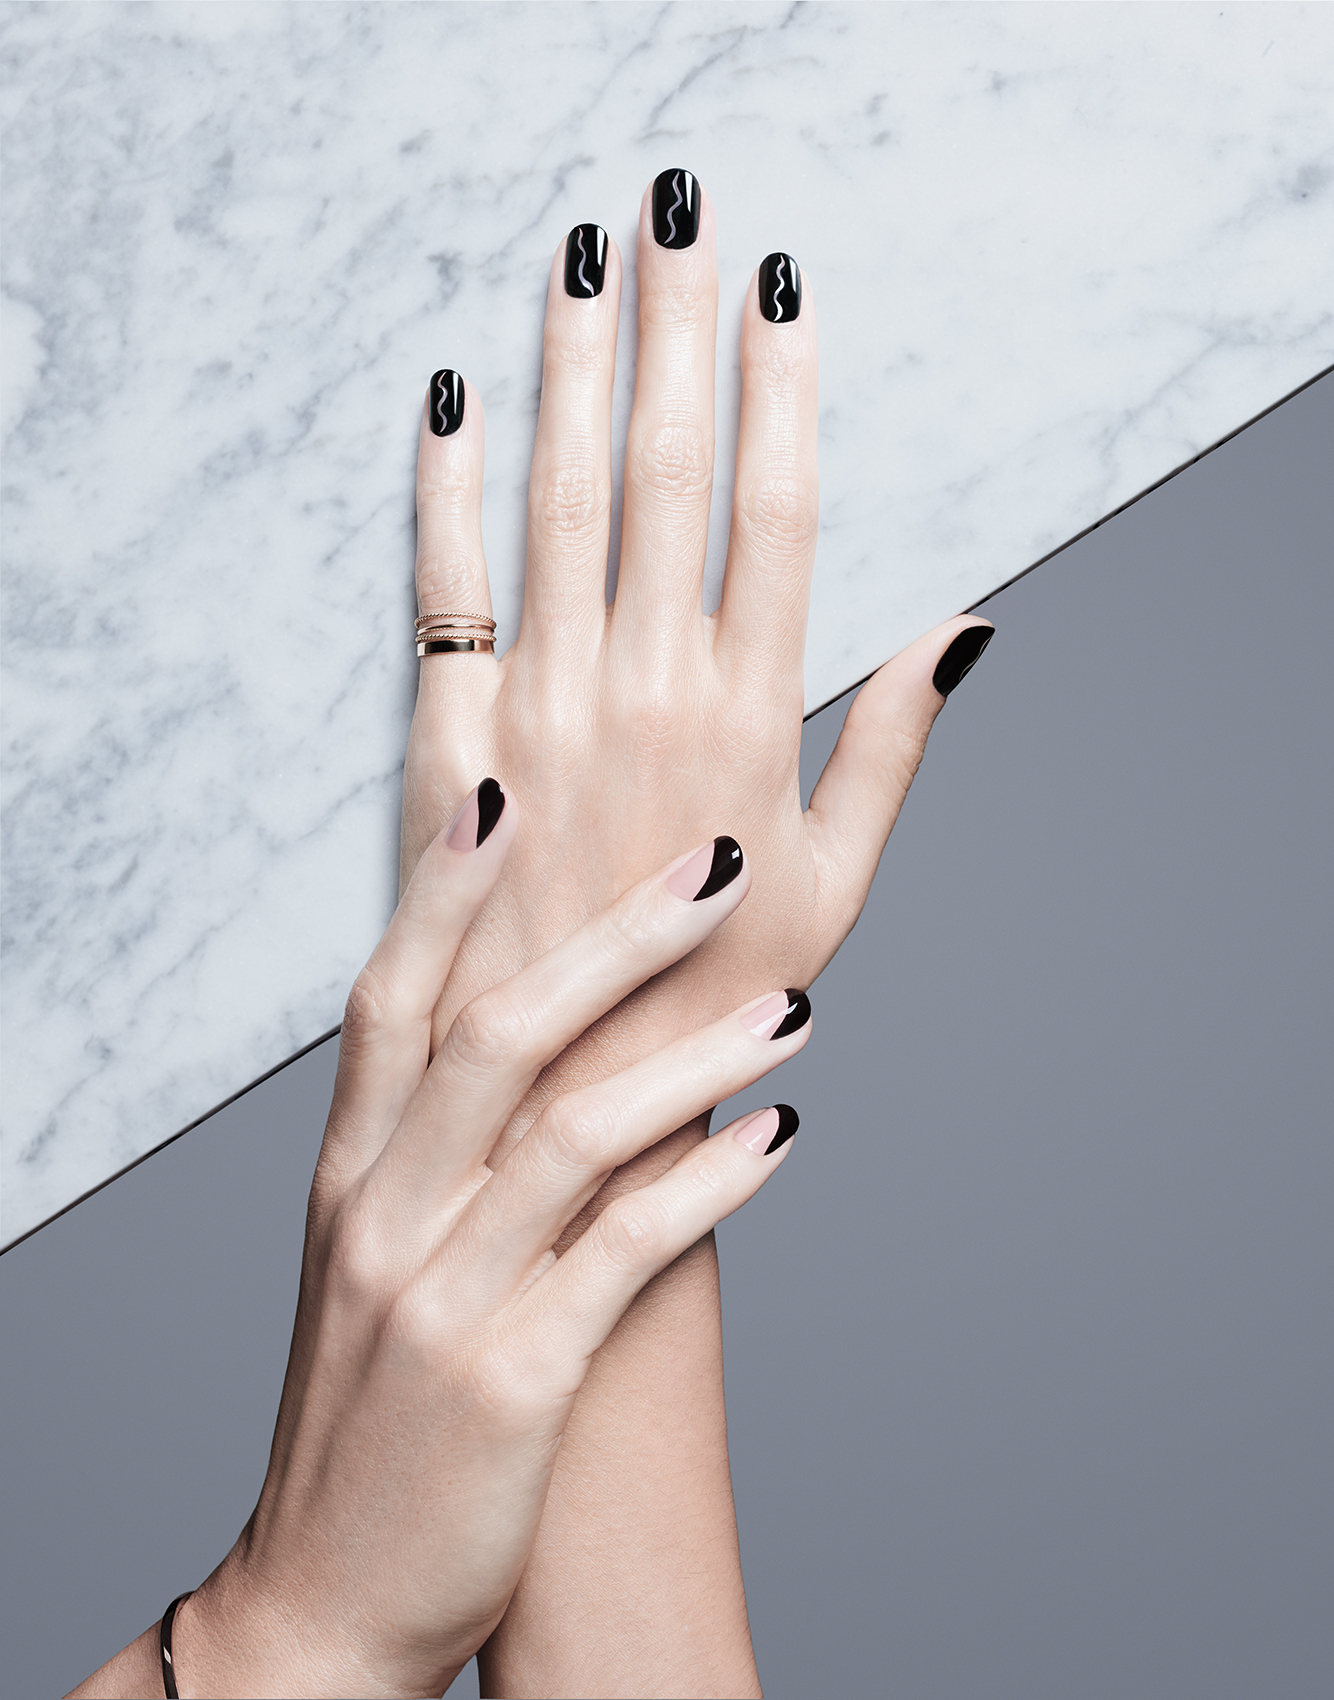 Hands with black and tan manicure